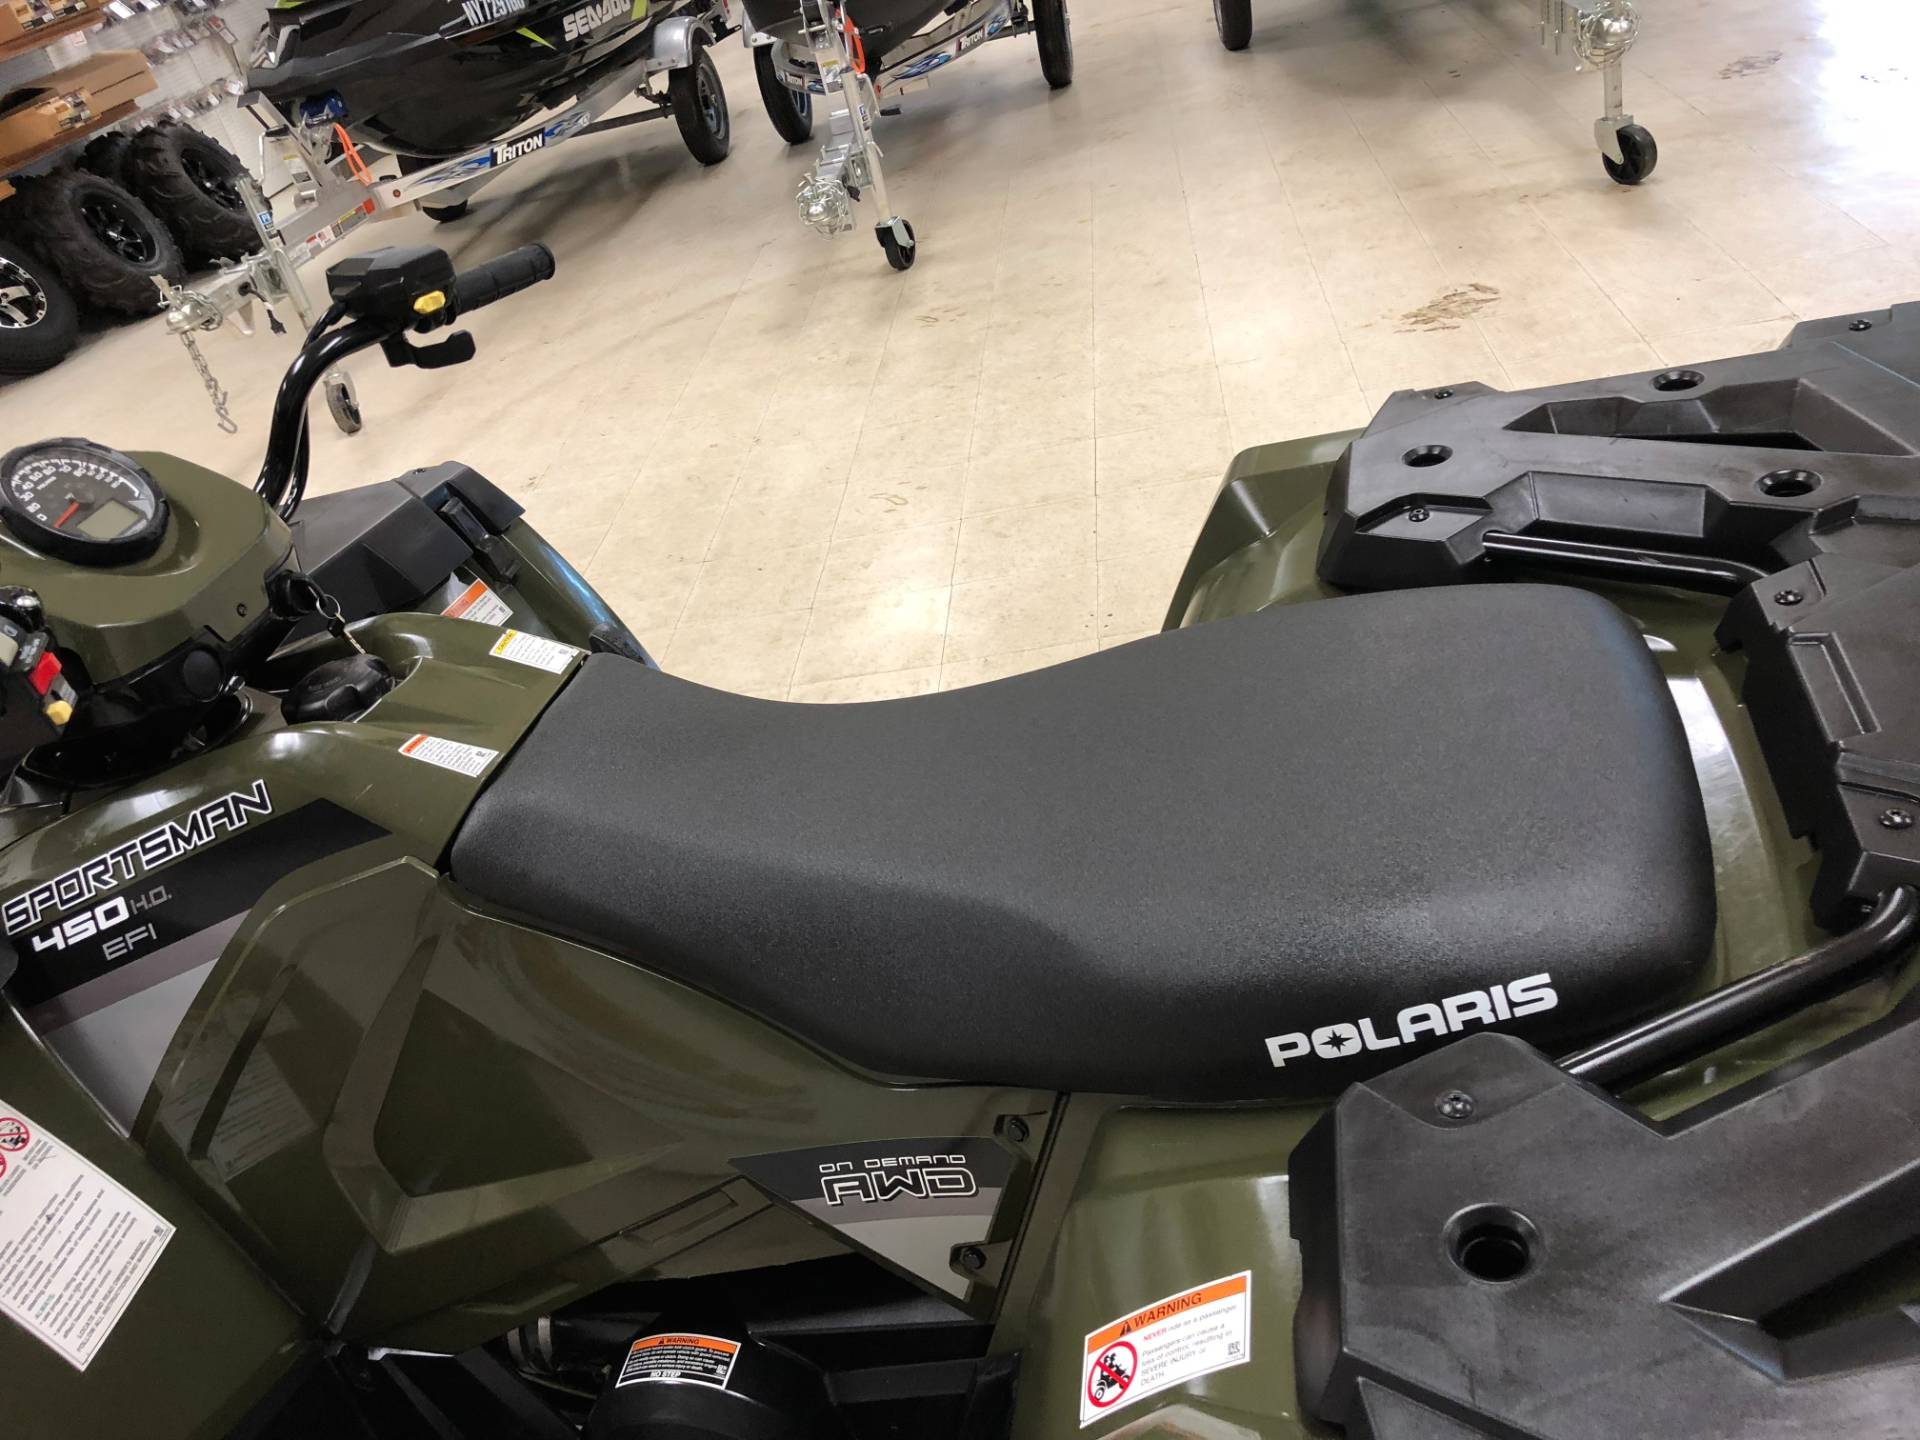 2016 Polaris Sportsman 450 H.O. in Herkimer, New York